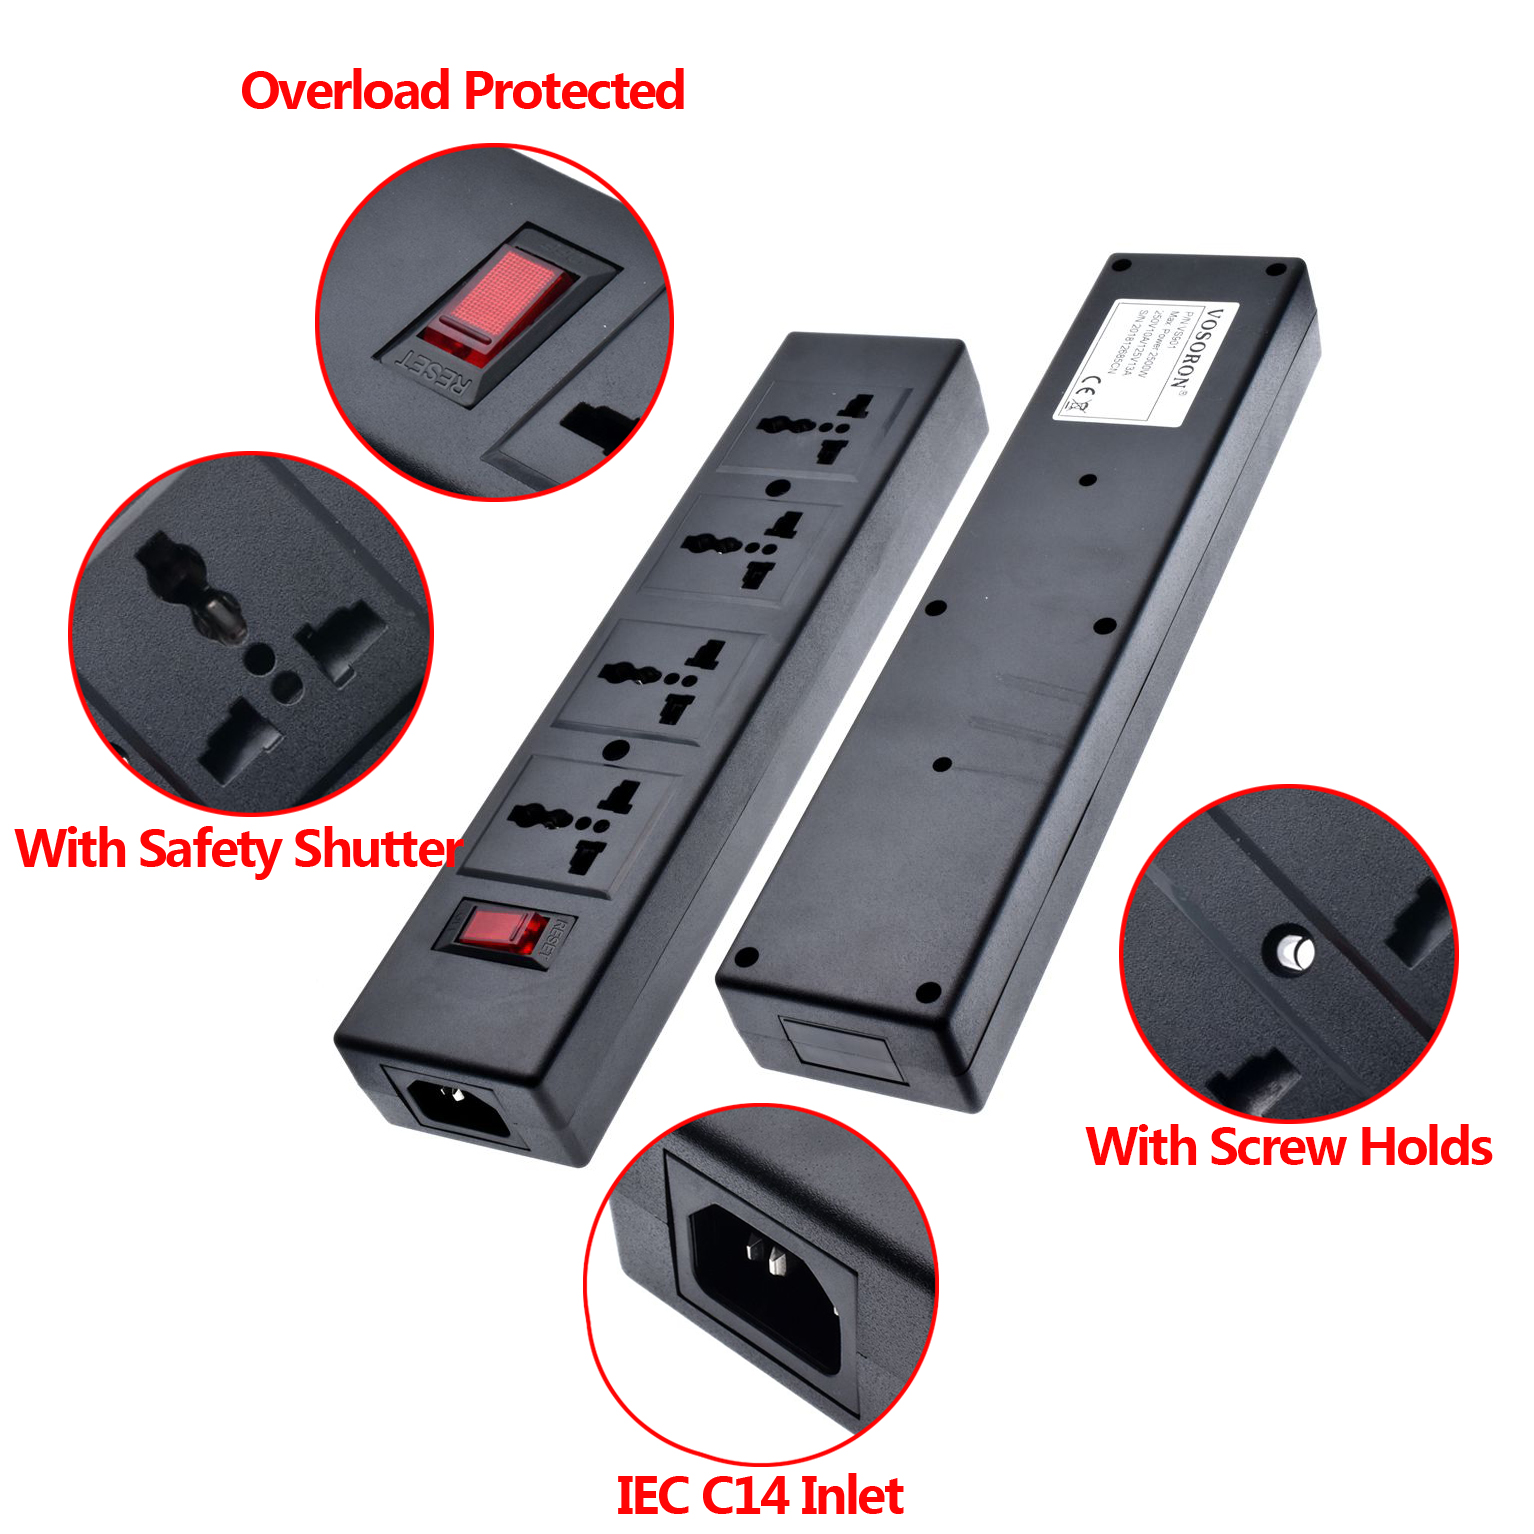 Black 250V 10A 4 jack Multifunction Universal power adaptor outlet PDU strip wiring board extension socket power cord converterBlack 250V 10A 4 jack Multifunction Universal power adaptor outlet PDU strip wiring board extension socket power cord converter